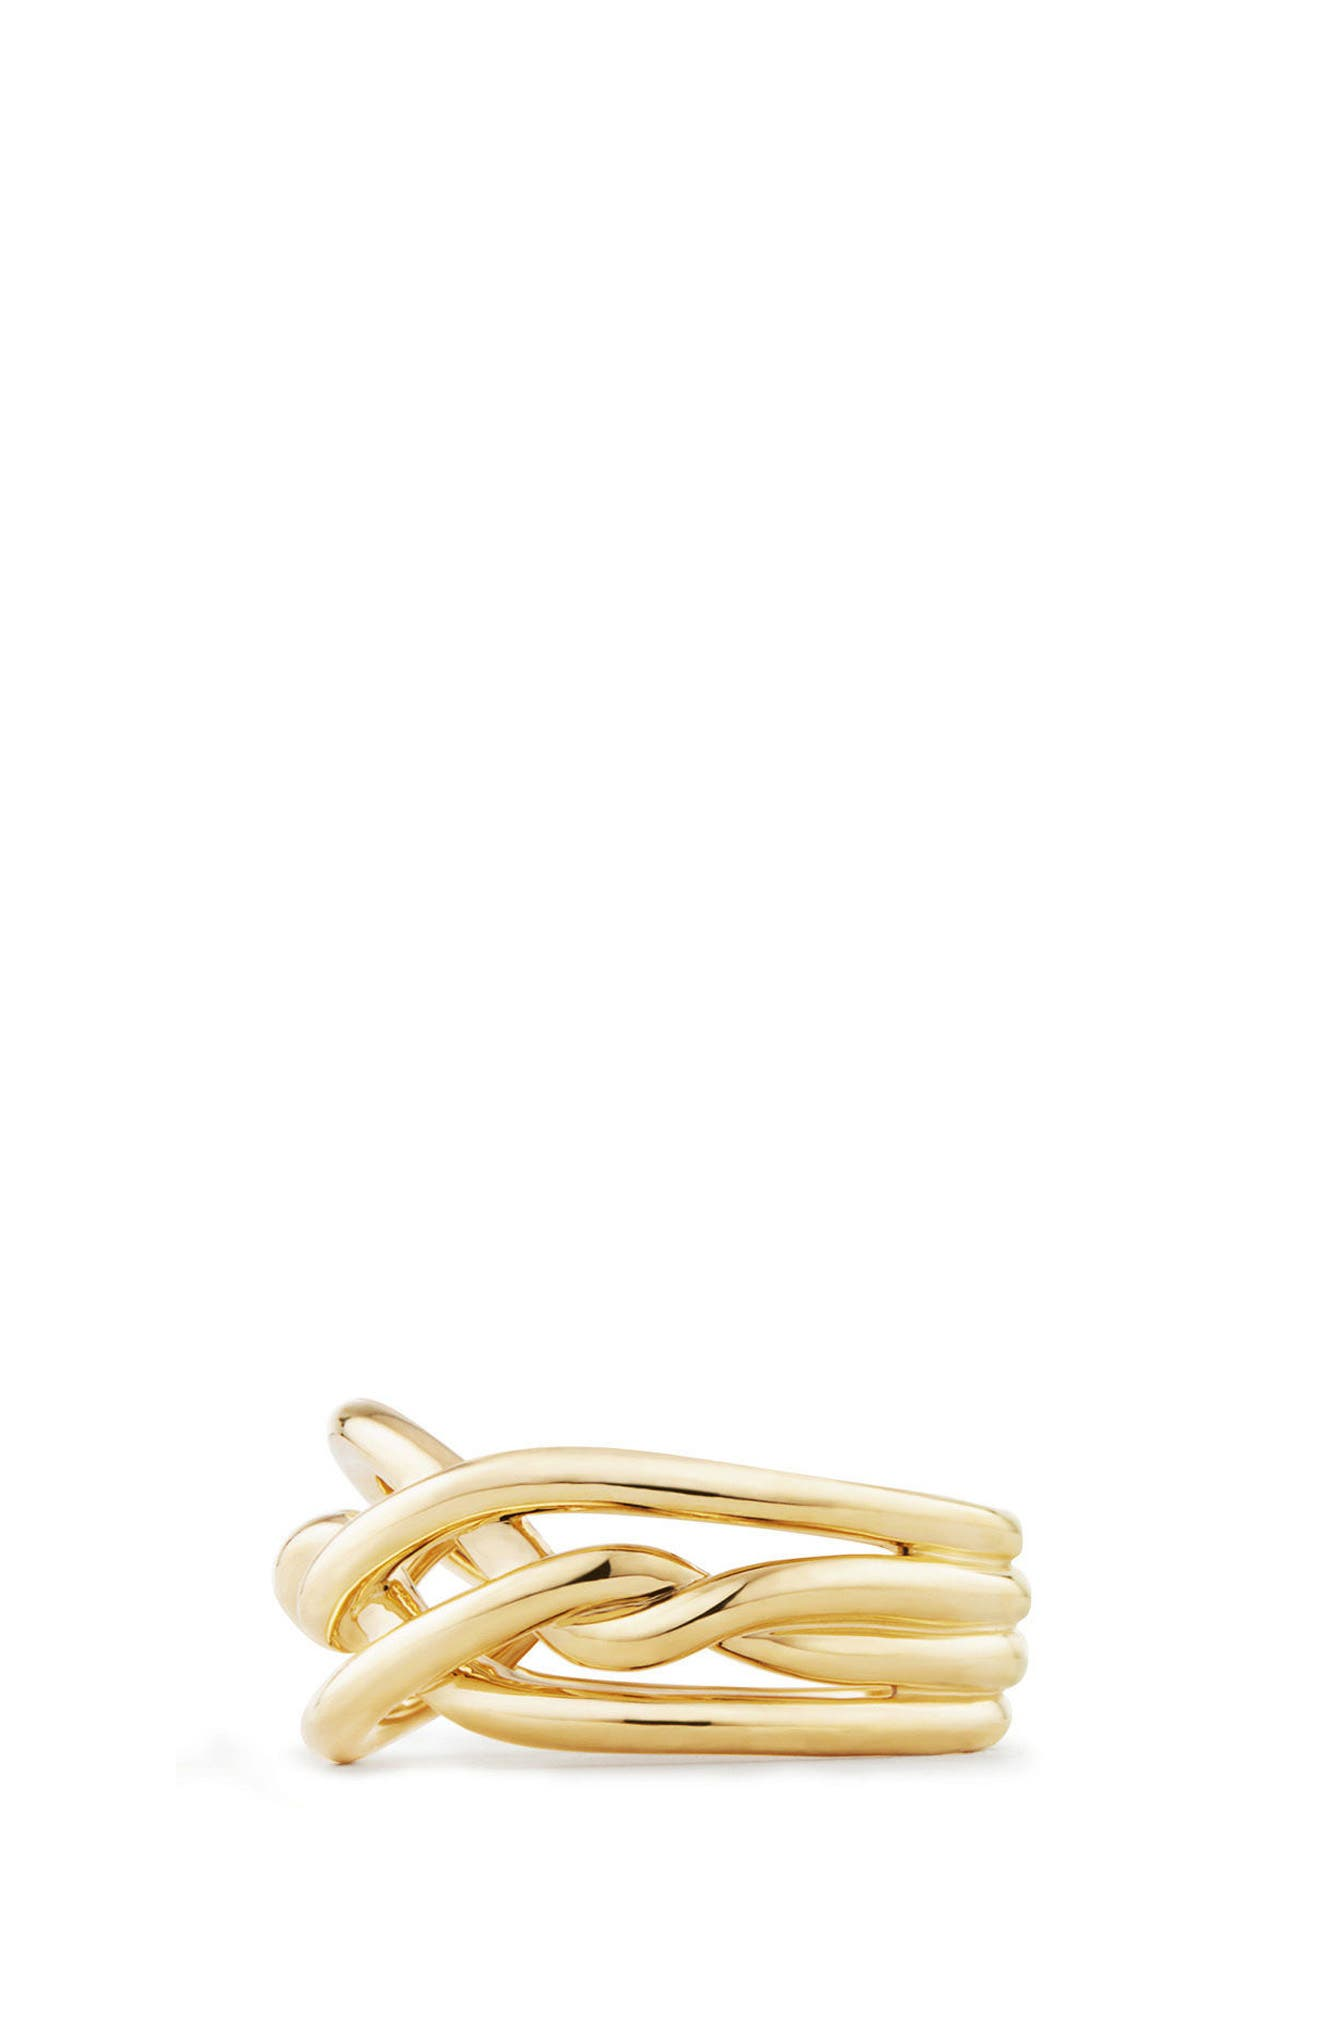 Continuance Ring in 18K Gold,                             Alternate thumbnail 2, color,                             YELLOW GOLD